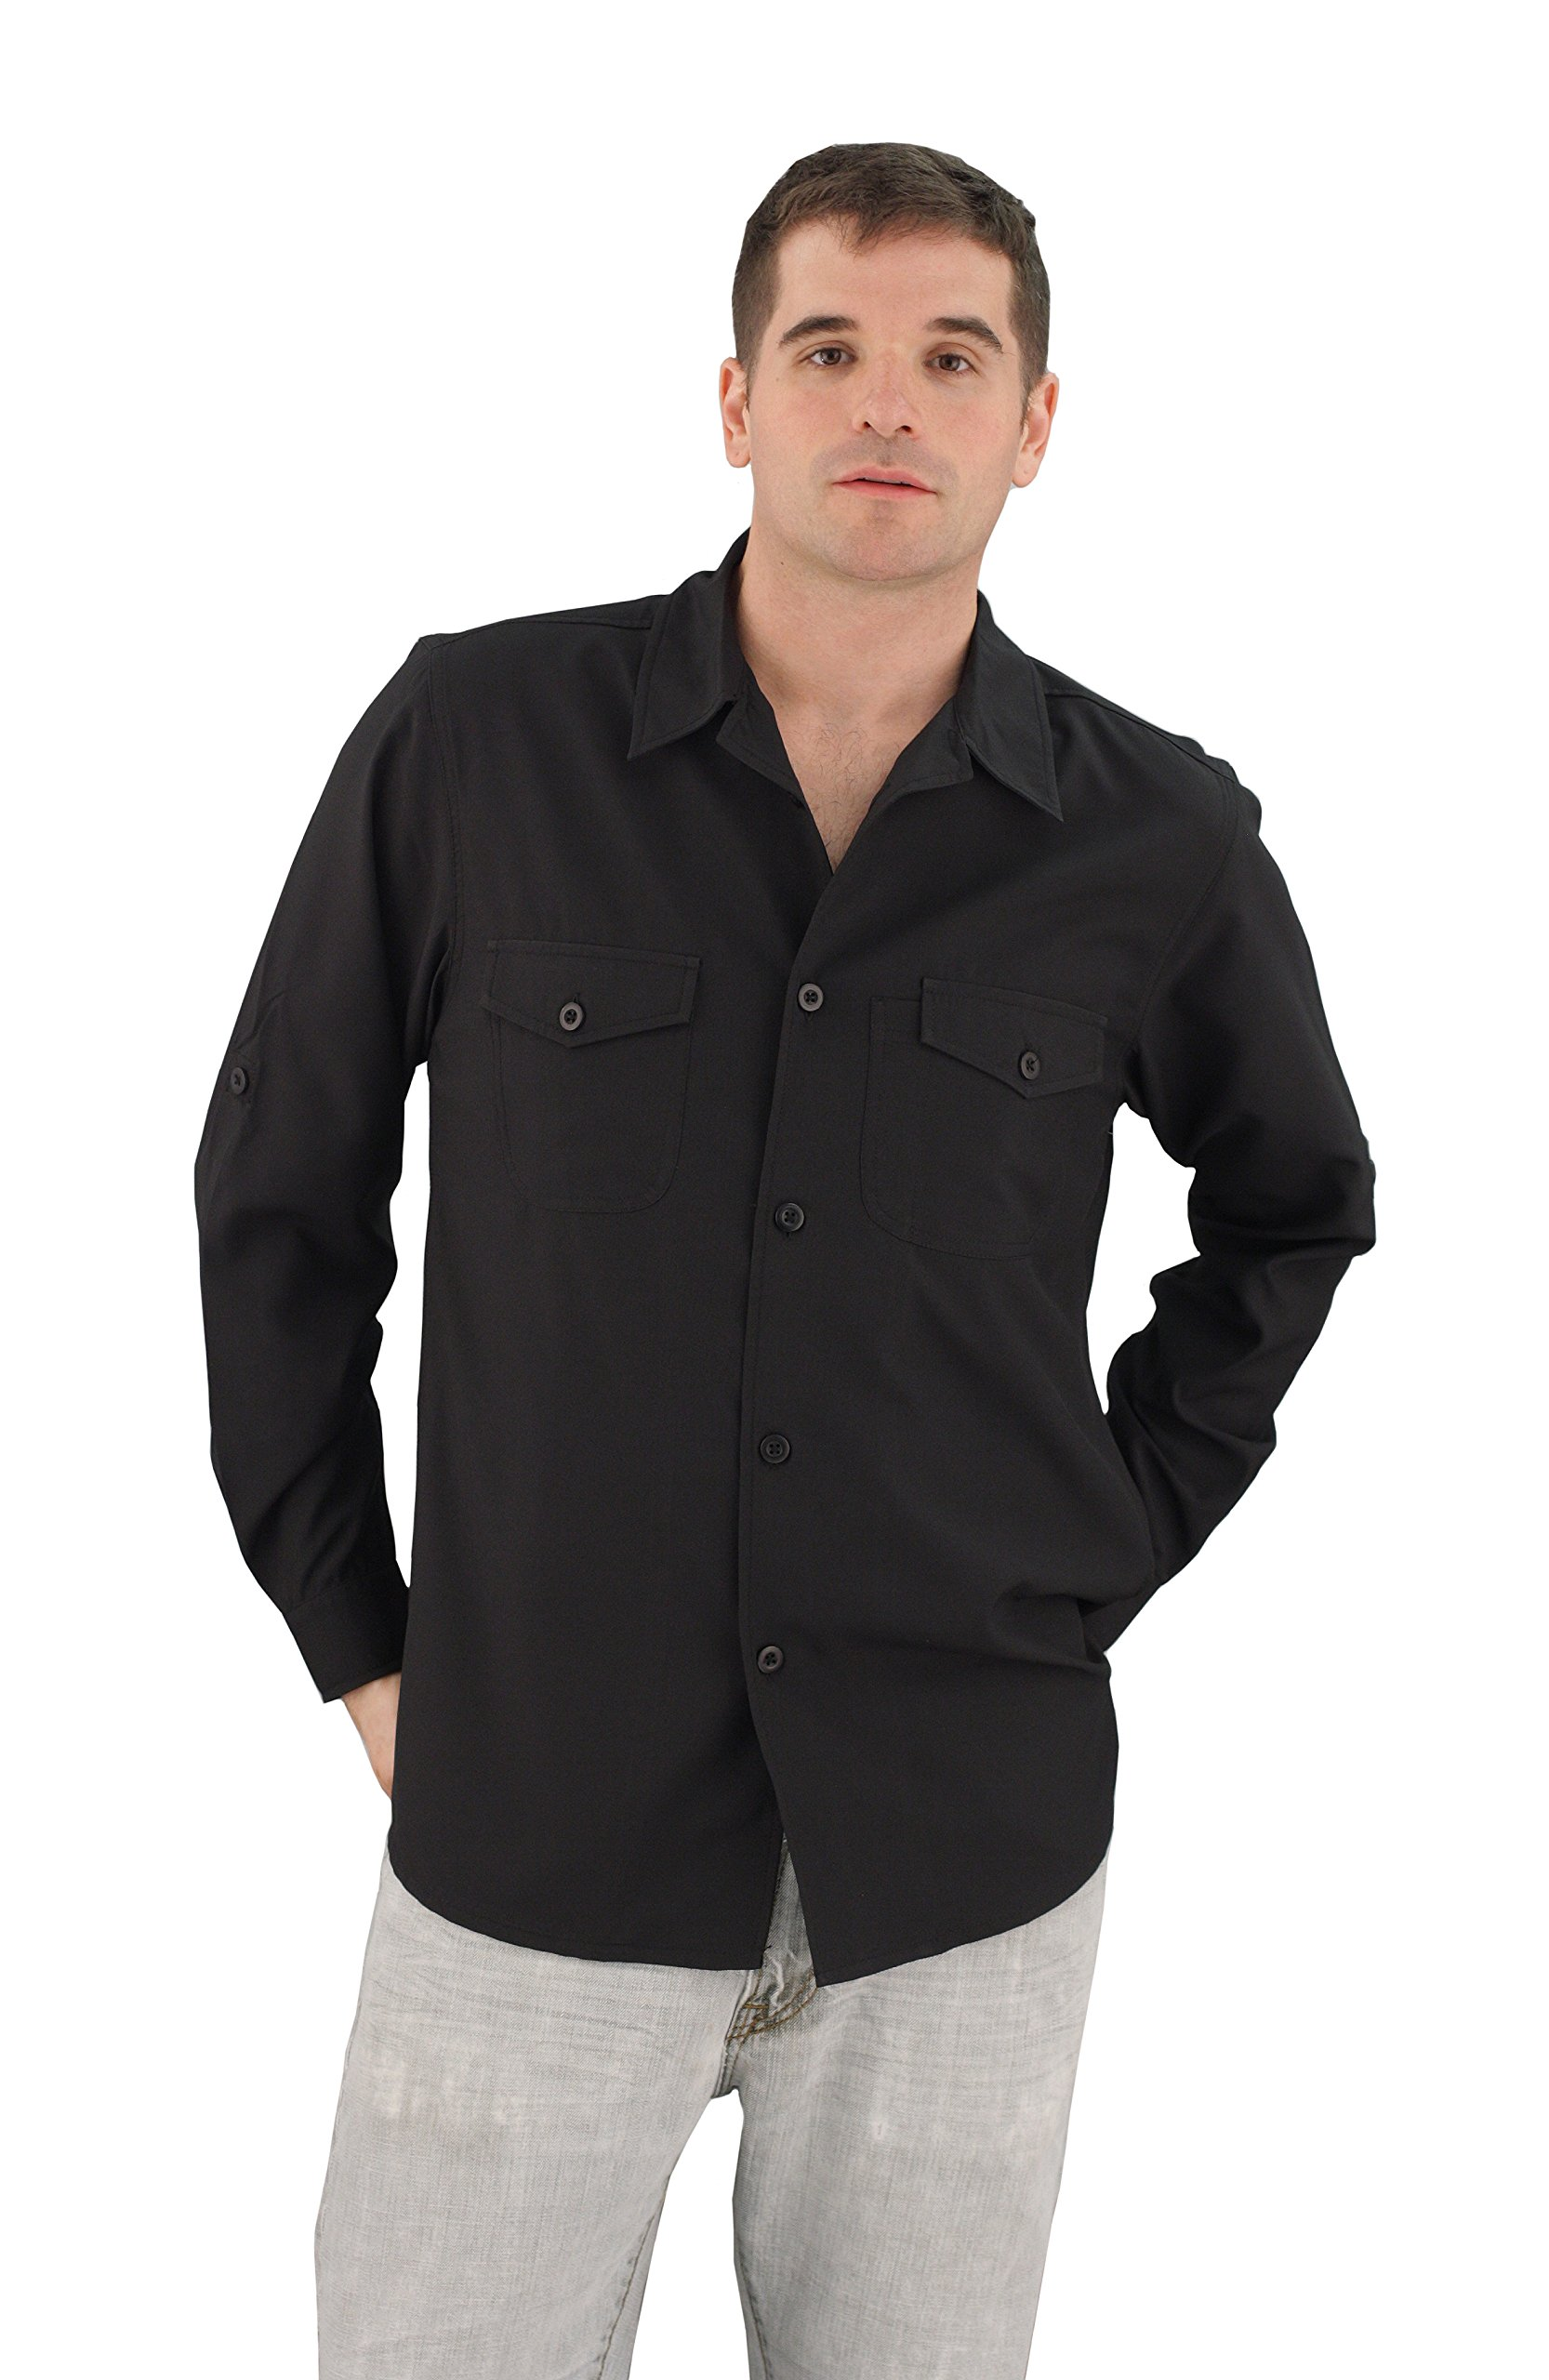 ASD Living Zanzibar Long Sleeve Dry Fit Server Waitstaff Shirt, Small, Black by ASD Living